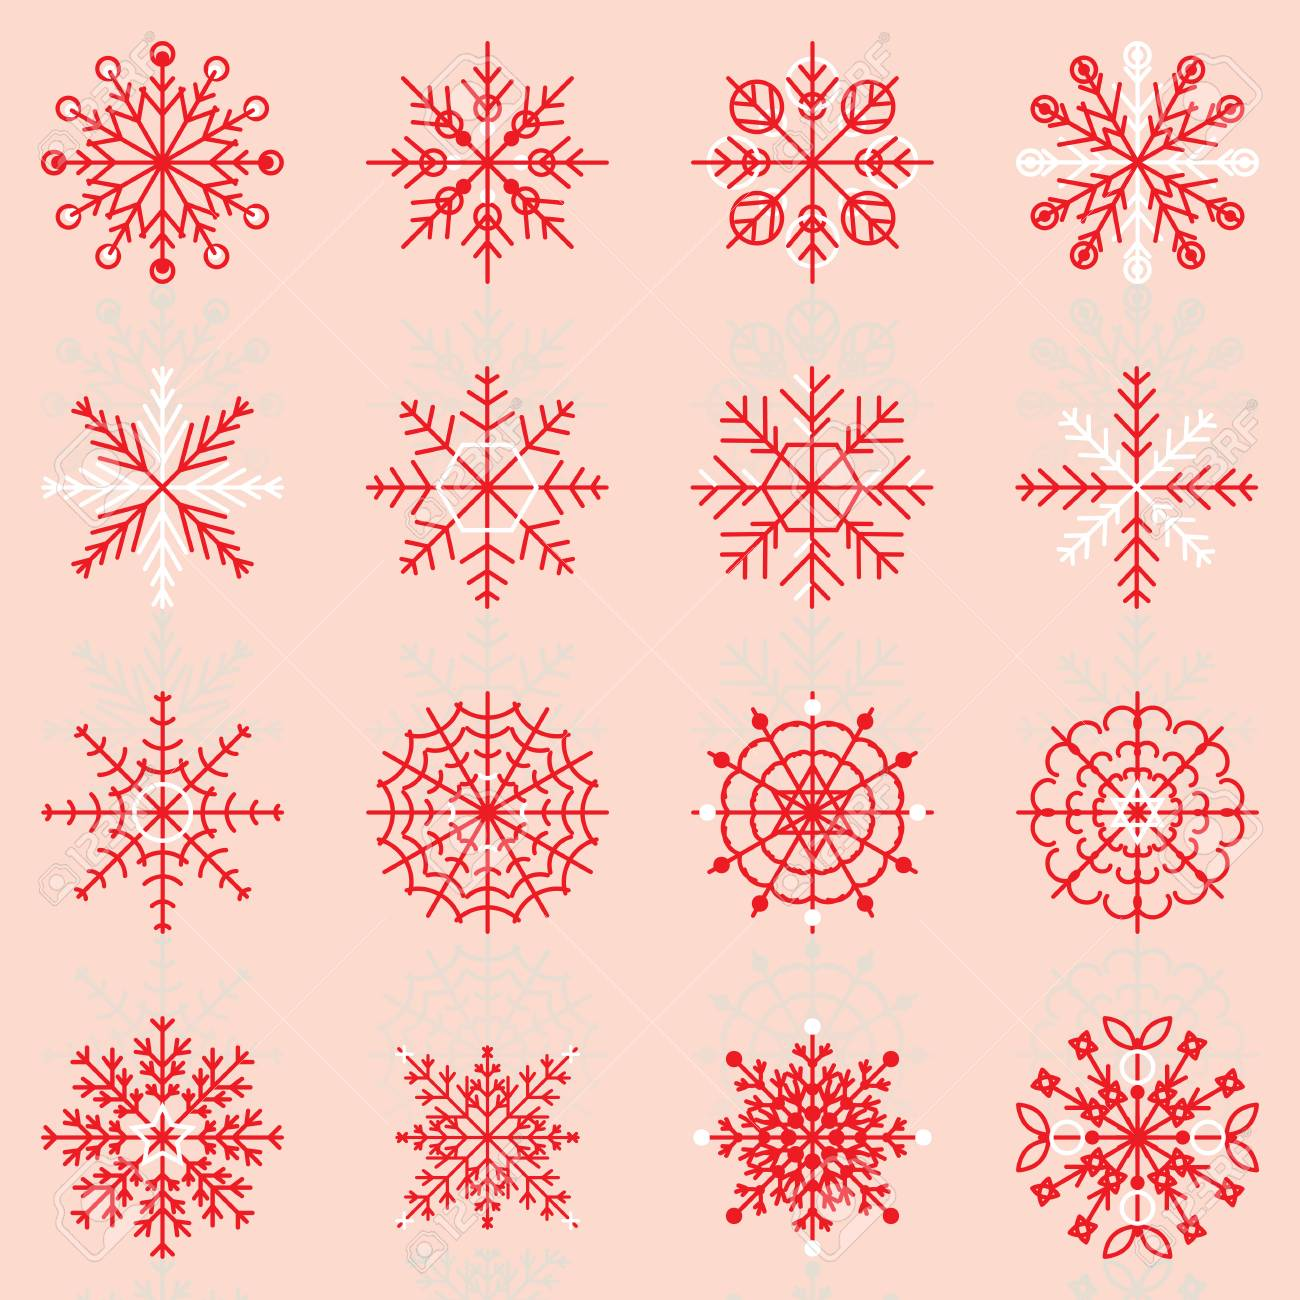 Create snowflake icons with reflect, stock vector - 24026764